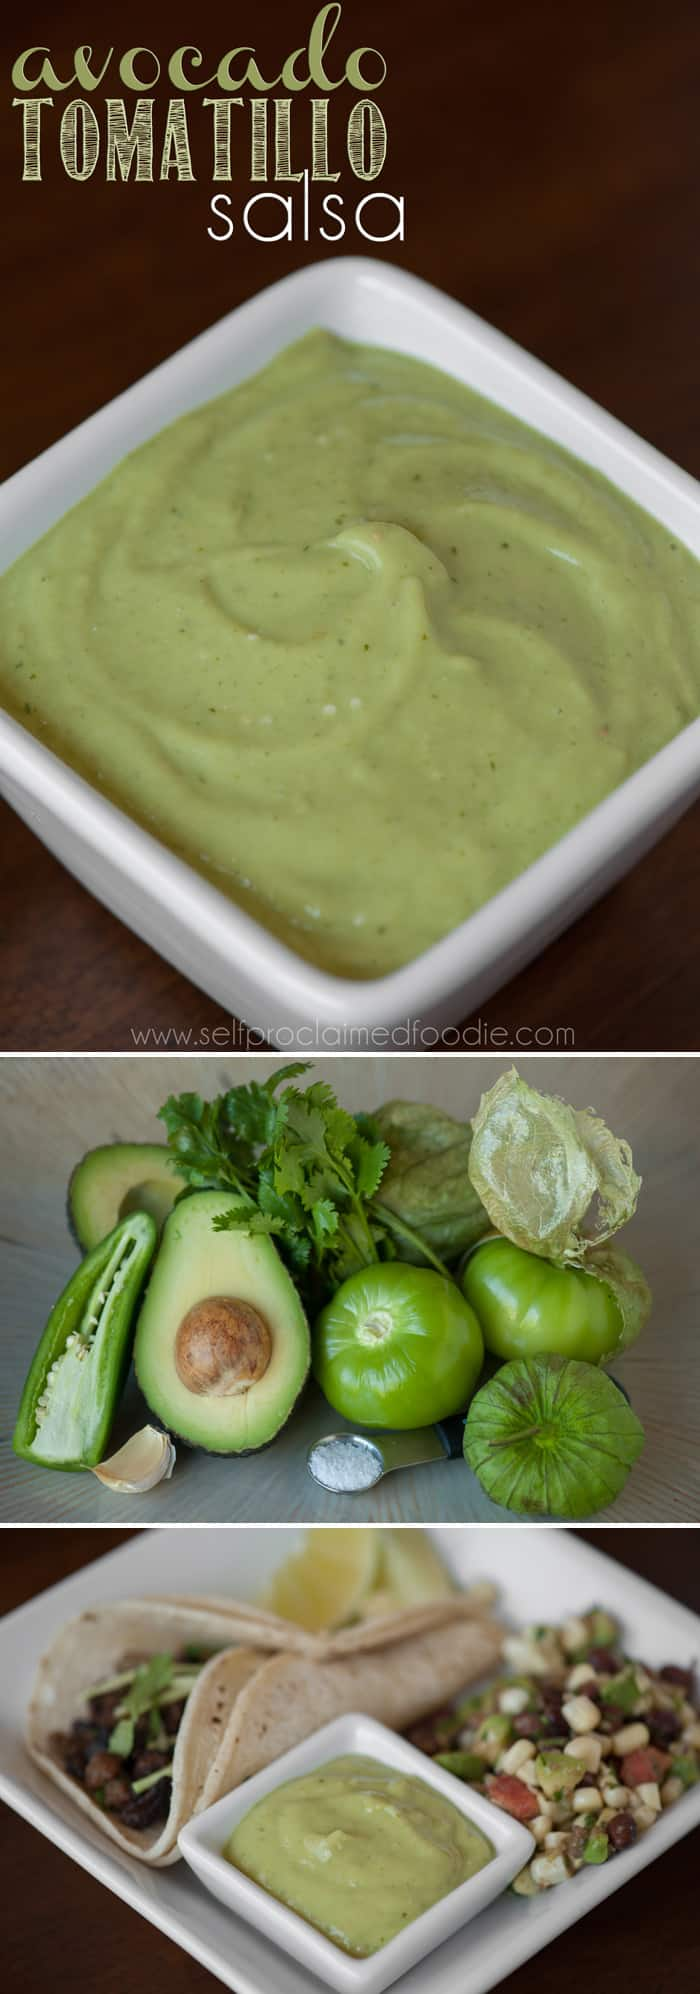 Next time you make tacos or burritos for dinner, be sure to make a batch of this creamy Avocado Tomatillo Salsa. Its bursting with flavor with a hint of heat.